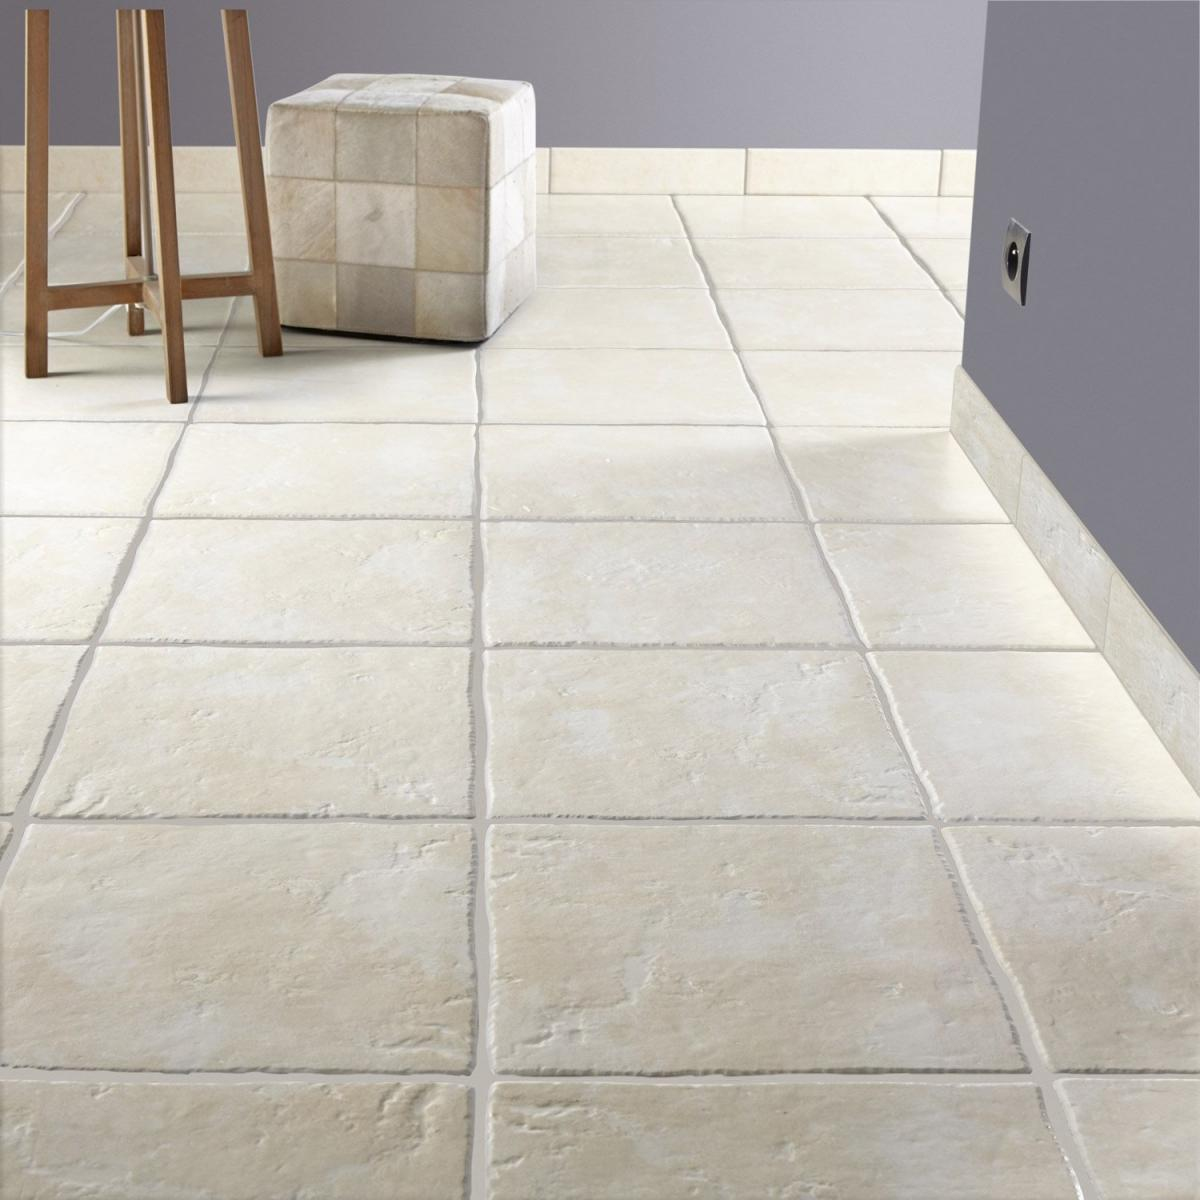 Faience Point P Salle De Bain Inspirant Stock Carrelage Nanterre Nouveaucarrelage Exterieur Point P Simple Idees